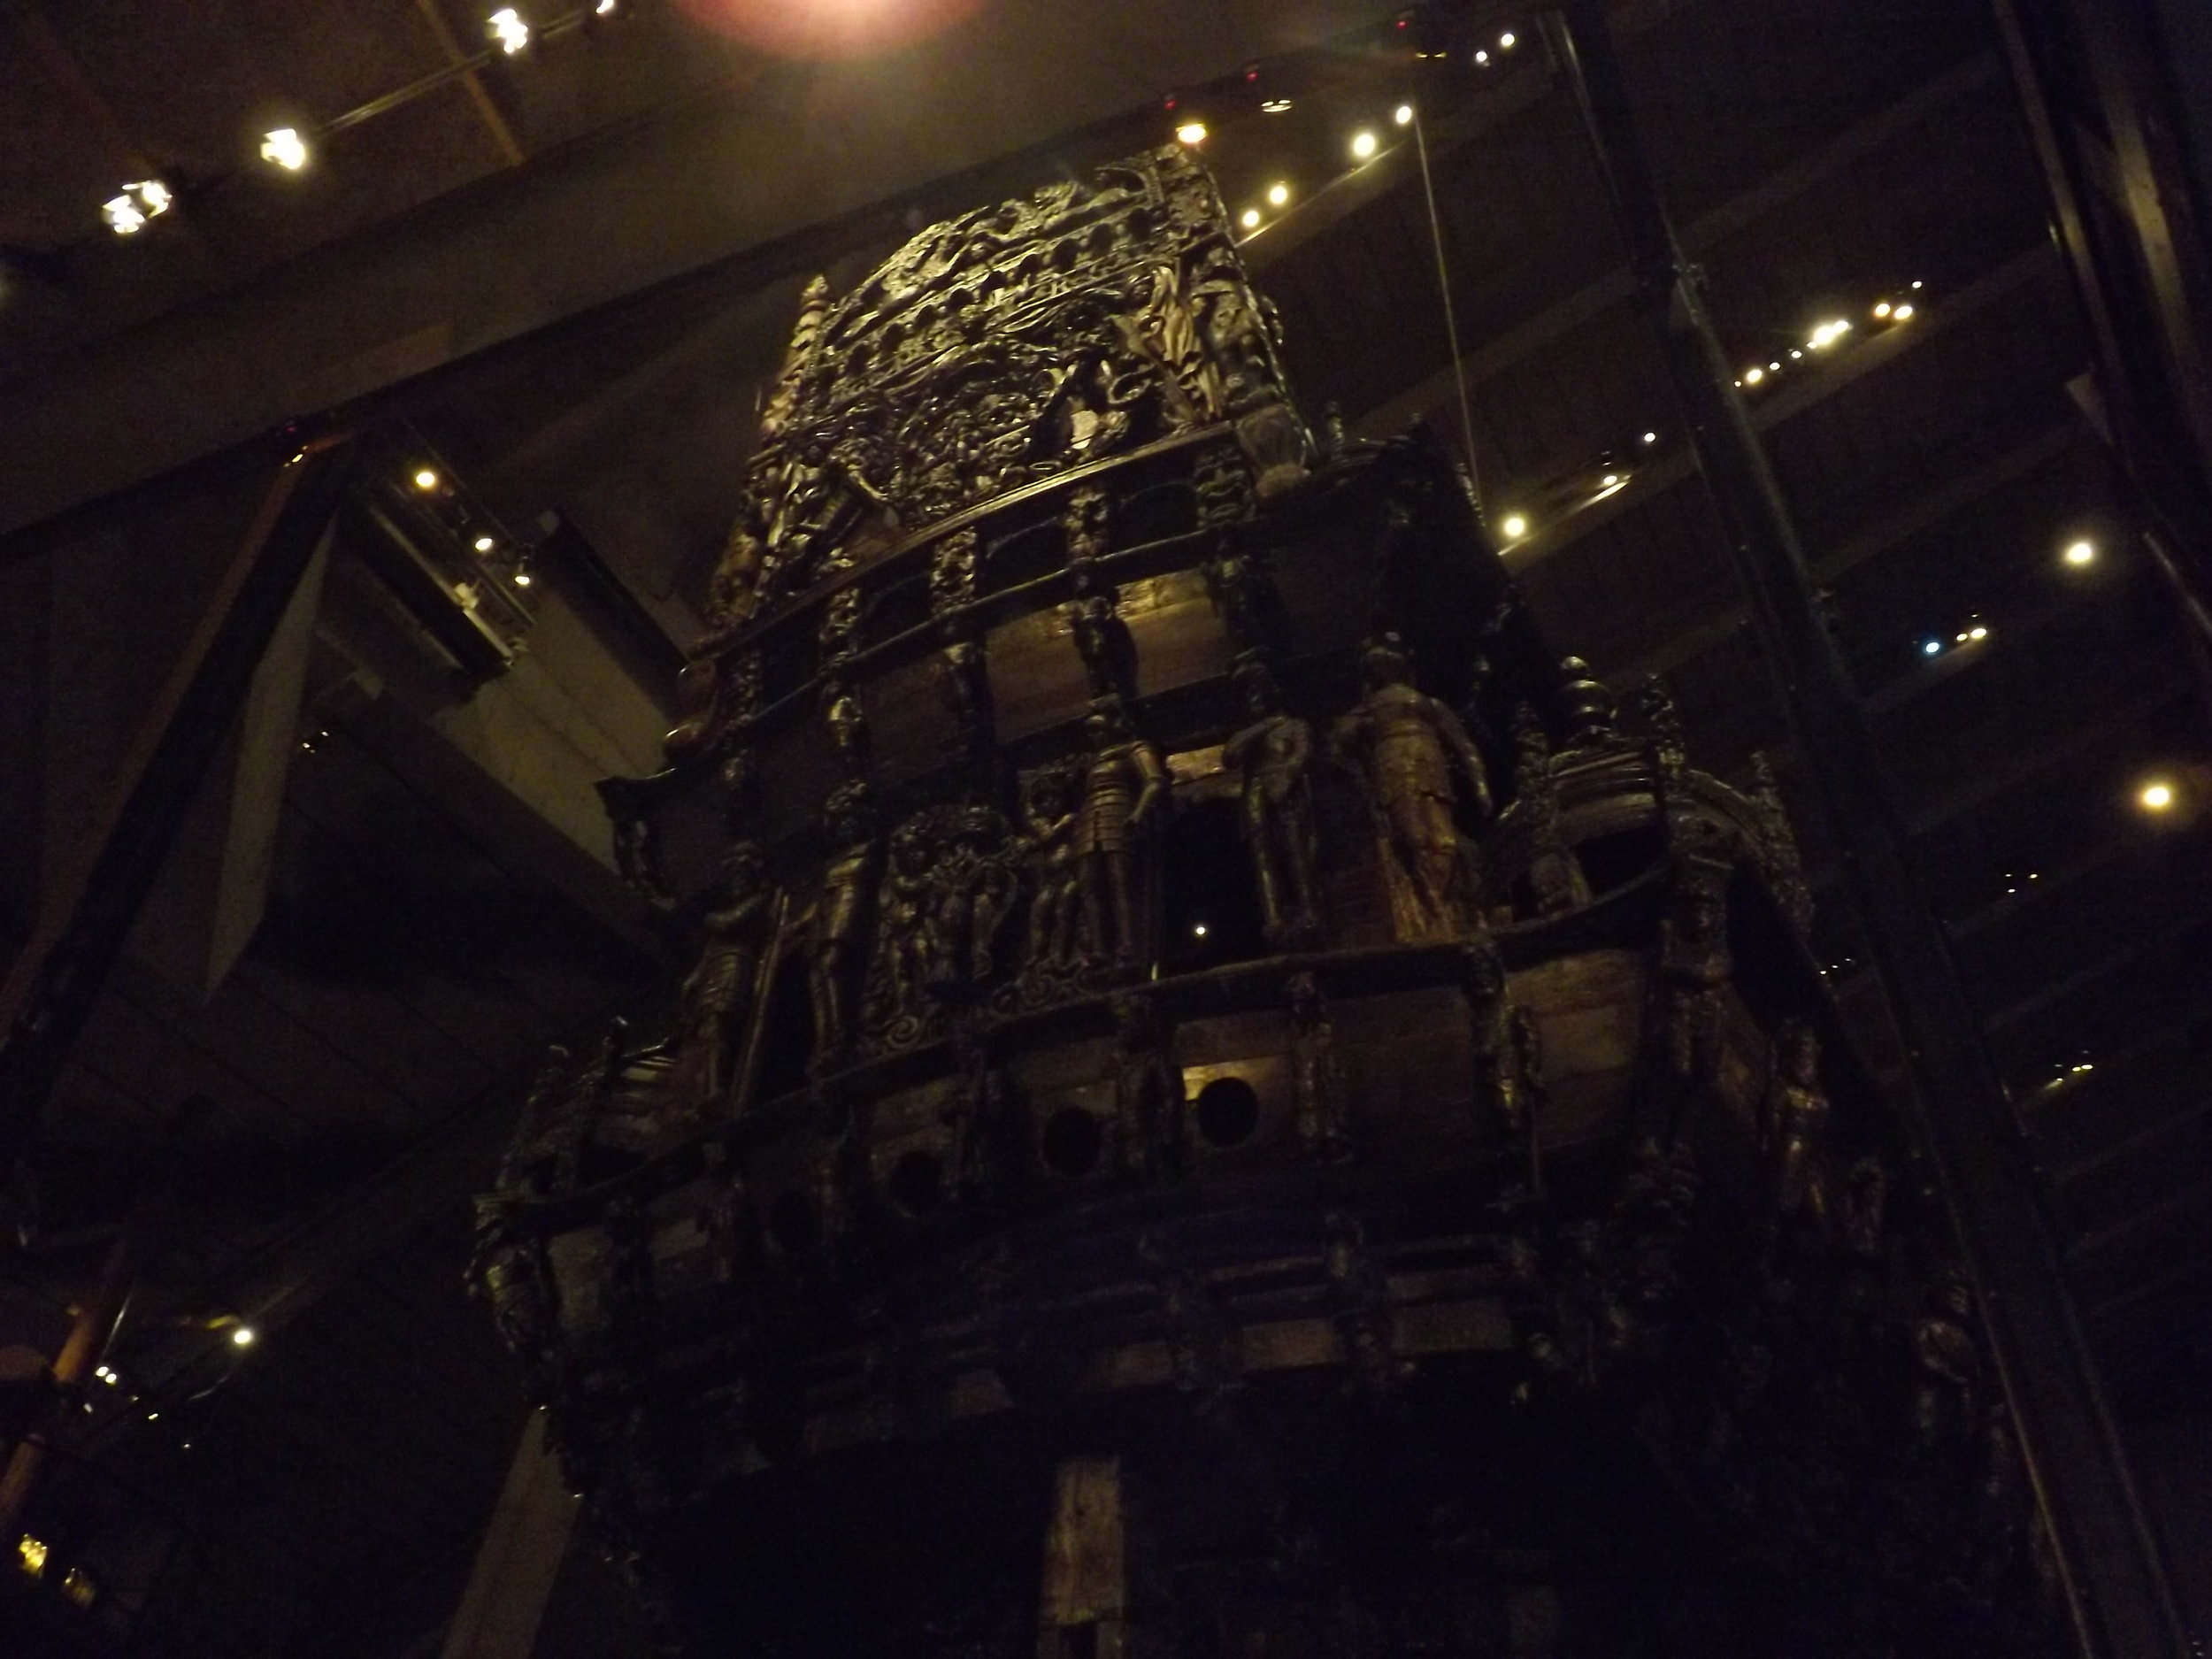 Underneath the Boat in the Vasa Museum | Tall Girl Meets World